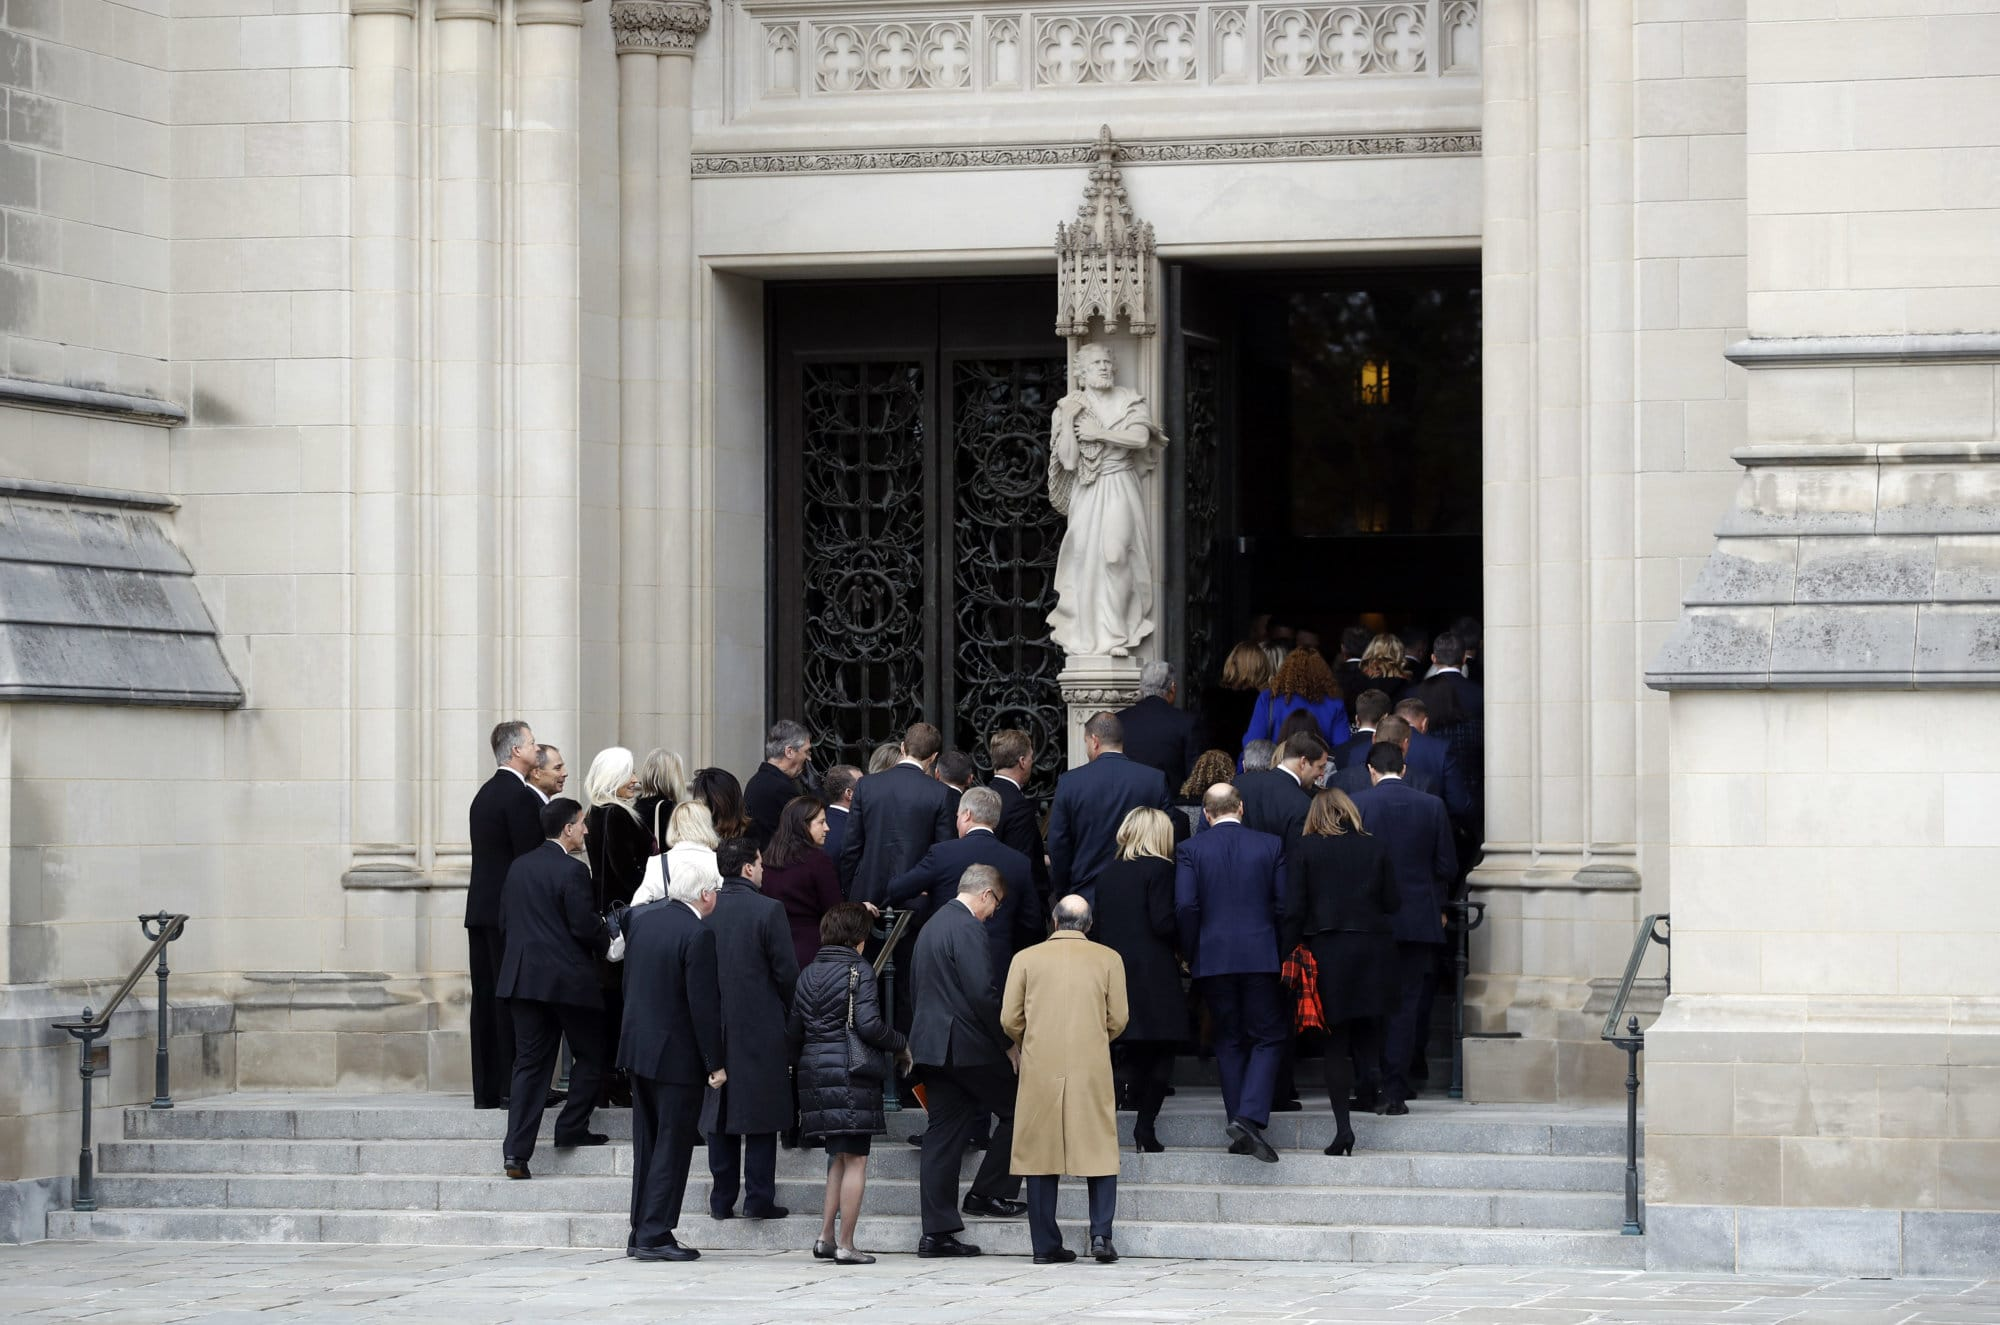 Mourners file into the Washington National Cathedral before a State Funeral for former President George H.W. Bush in Washington, Wednesday, Dec. 5, 2018. (AP Photo/Patrick Semansky)